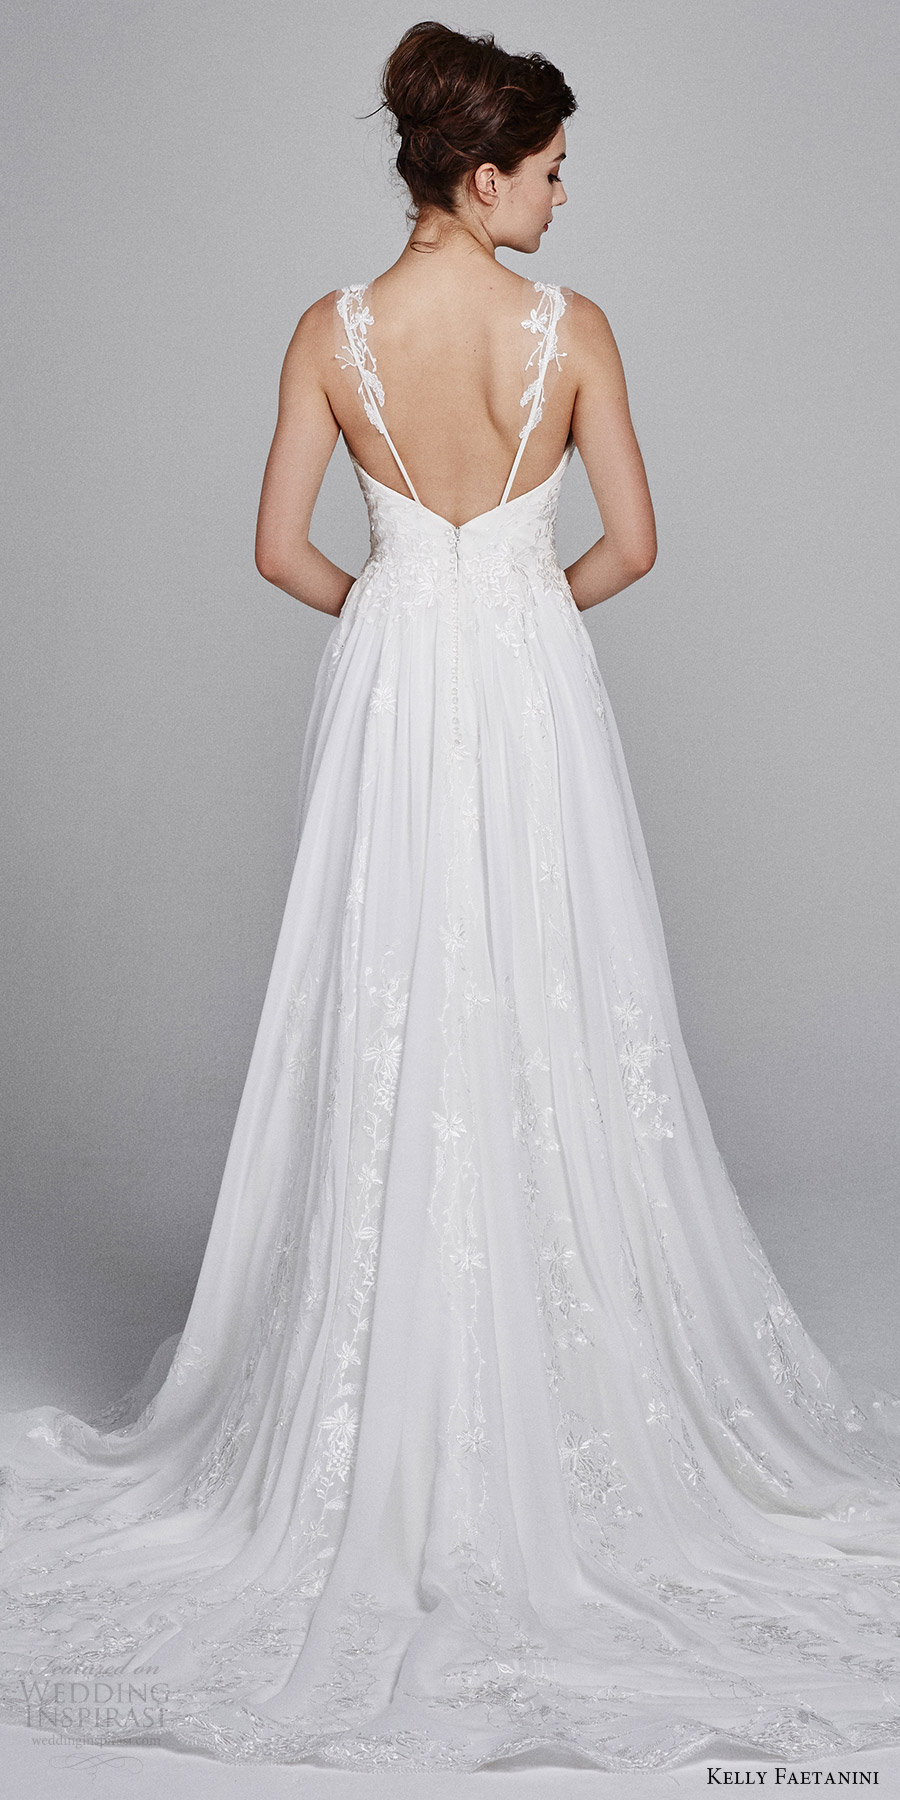 kelly faetanini bridal fall 2017 sleeveless illusion straps vneck aline wedding dress (poppy) bv train